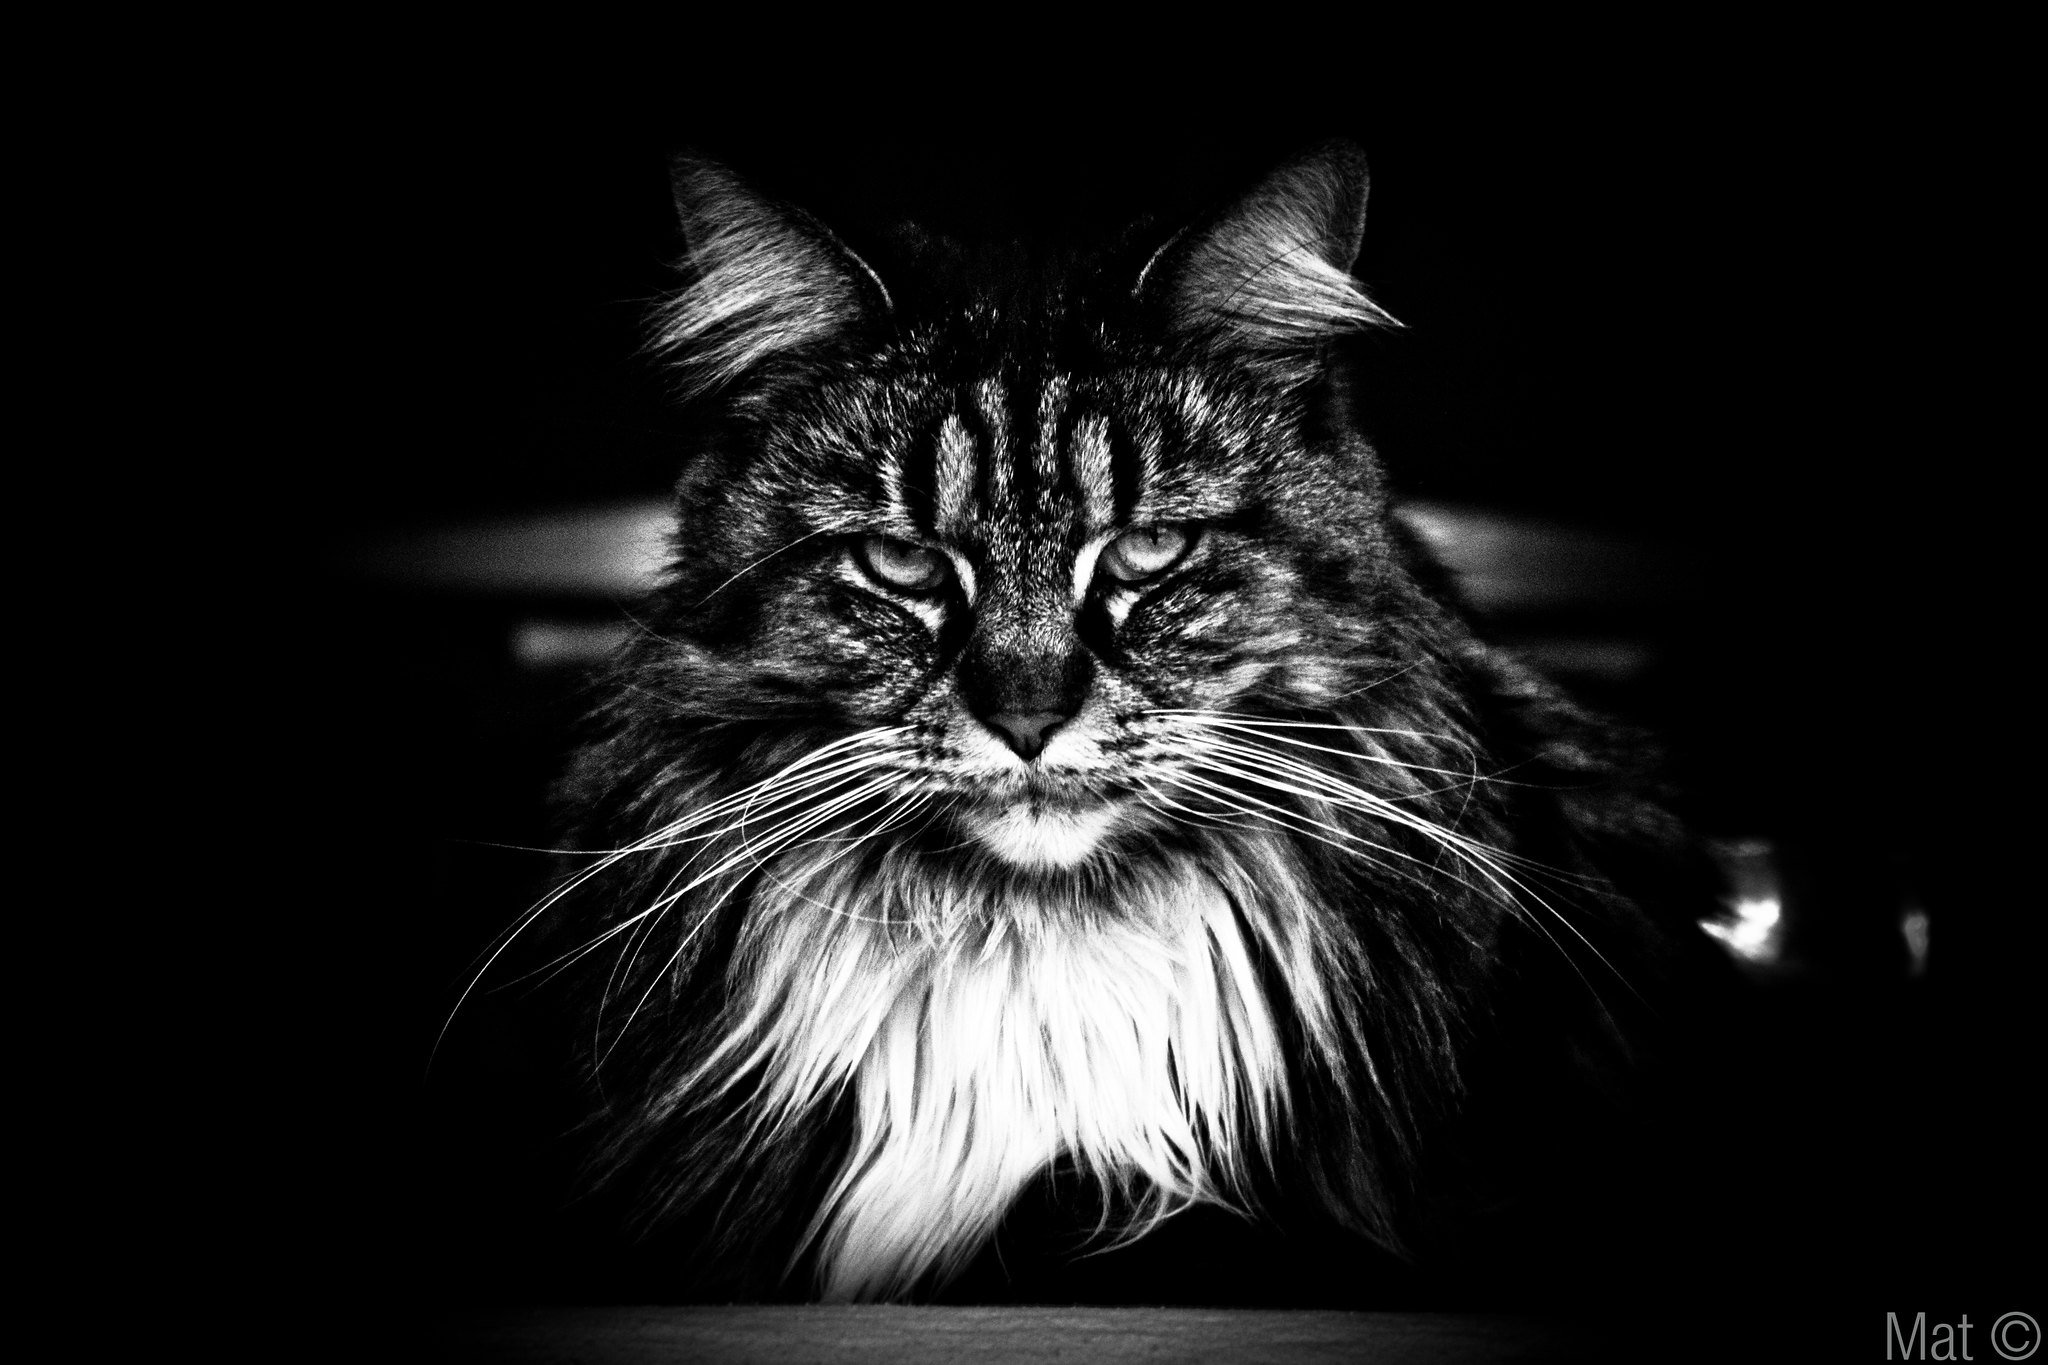 RT @evilbmcats: No greater meaning. No higher truth. No blissful being. Just darkness. https://t.co/KGxGBBmdfC